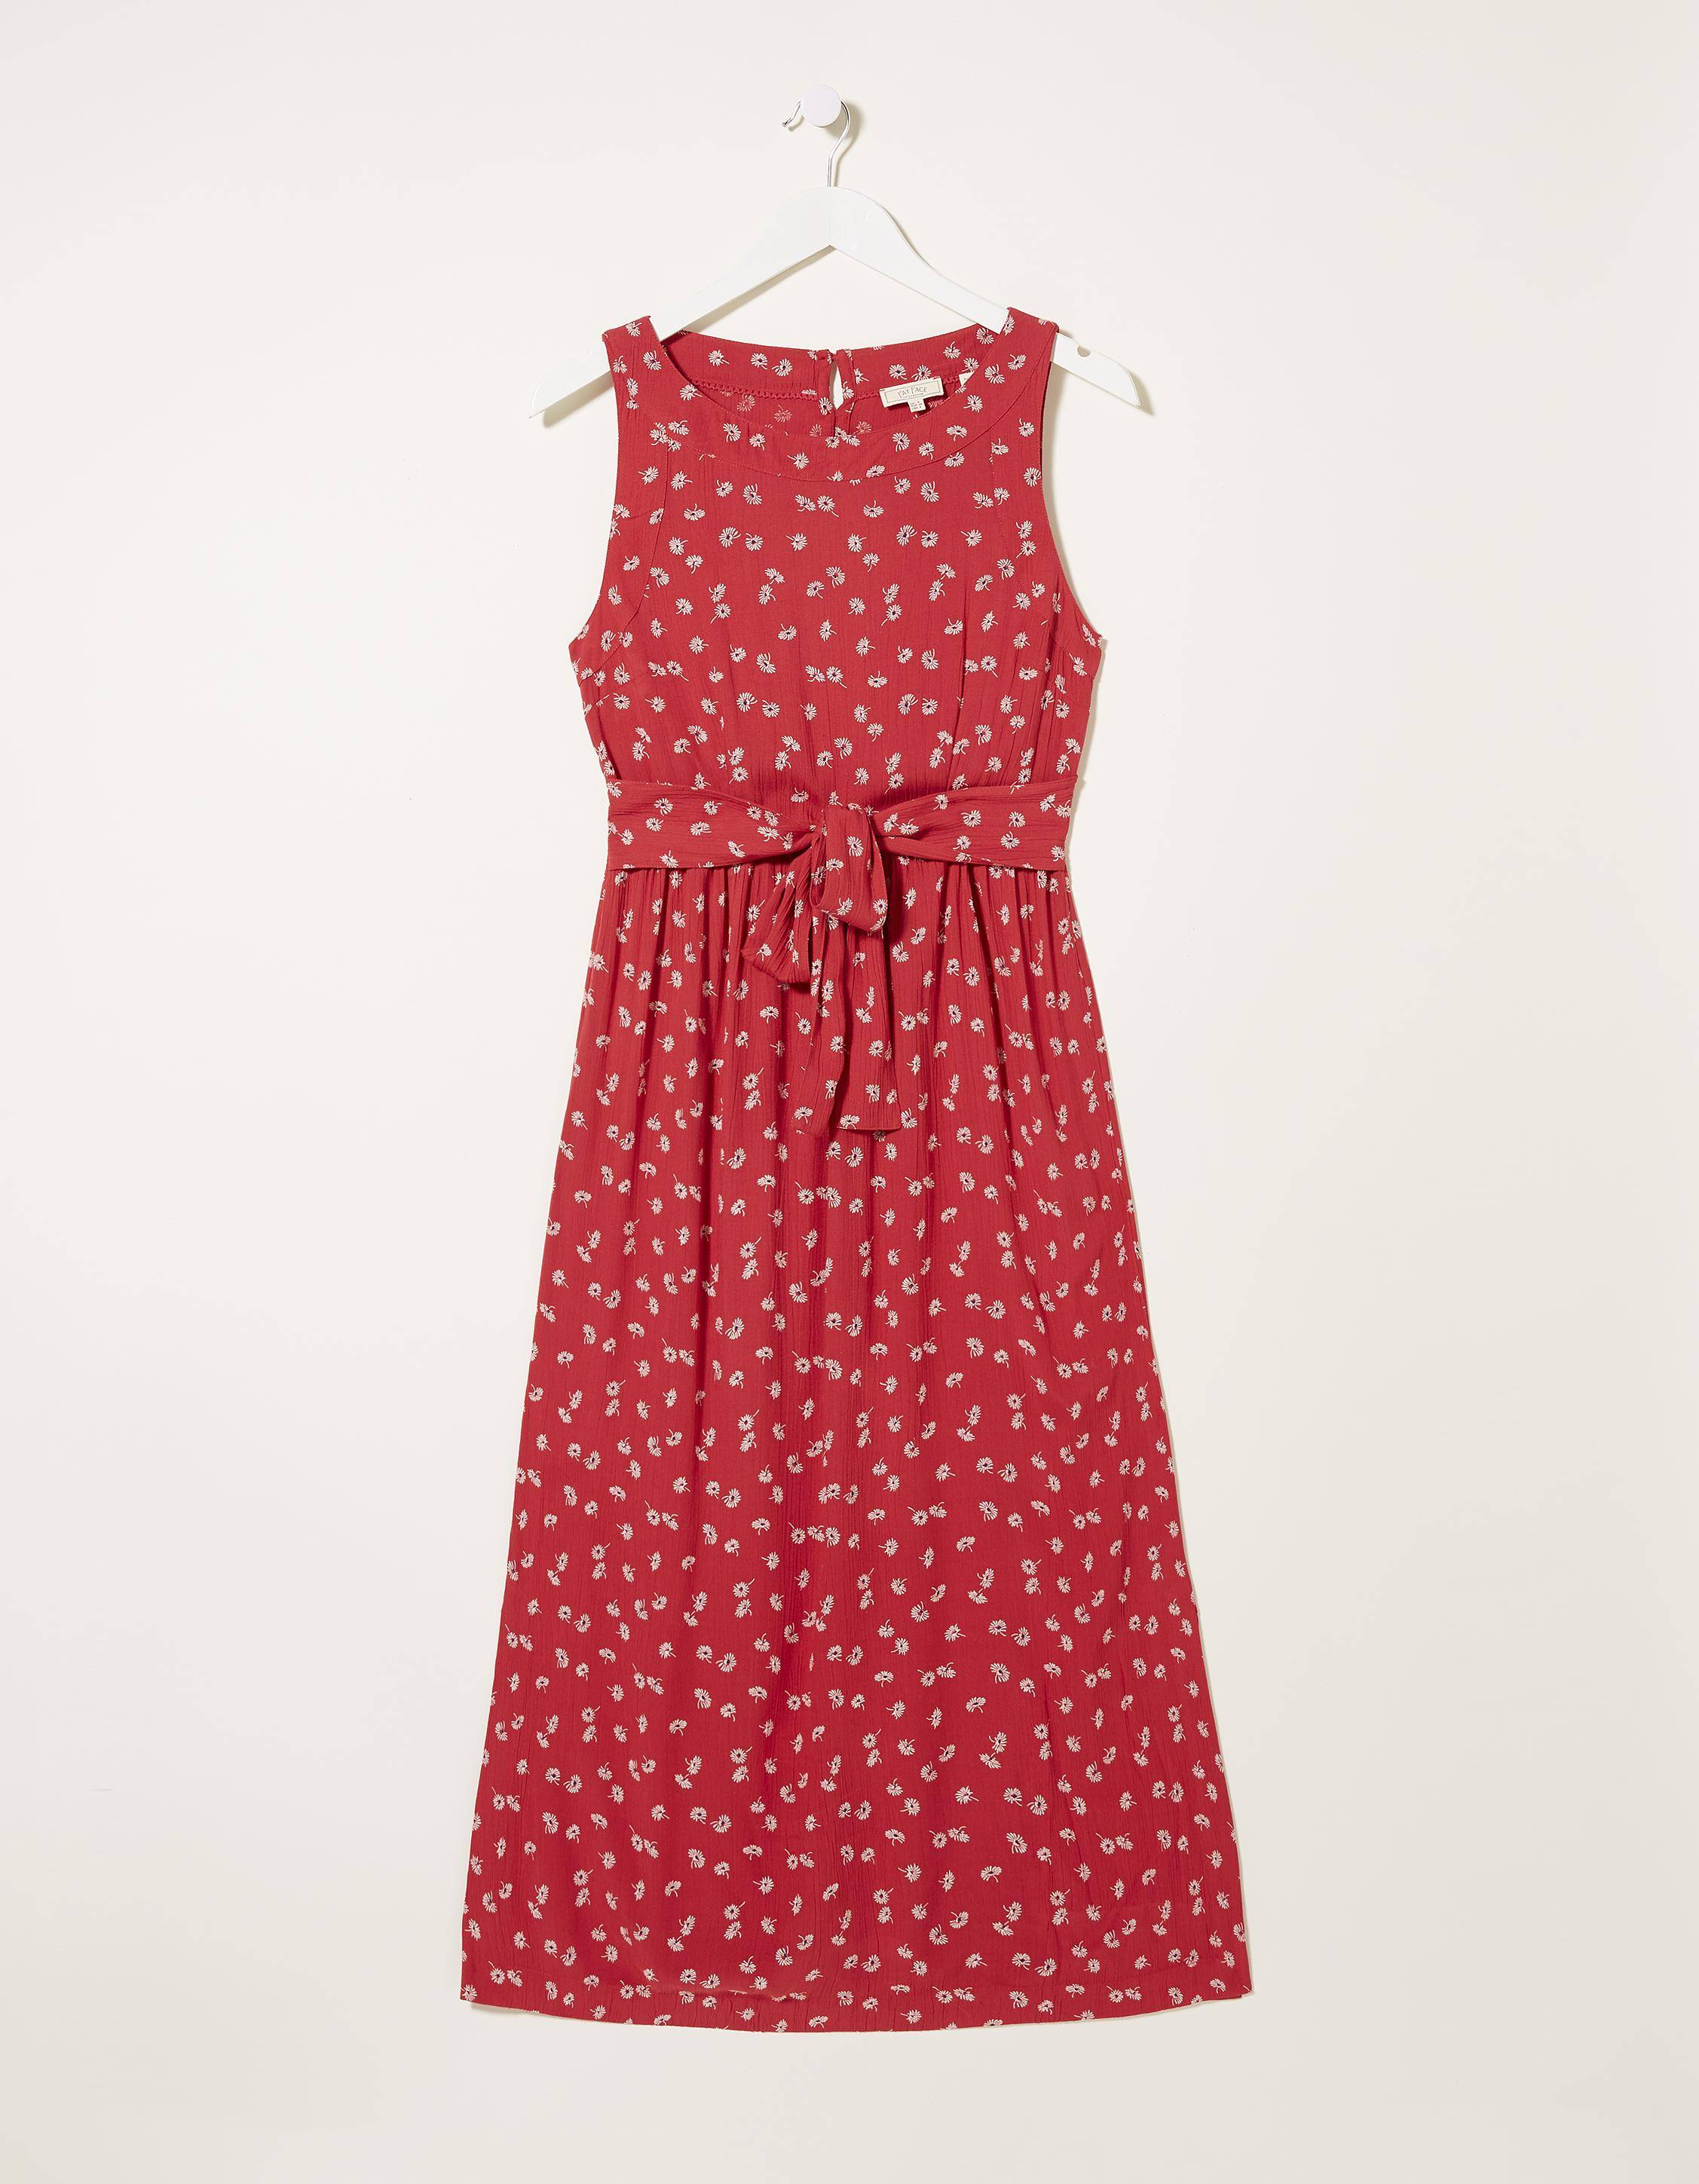 Fat Face Laurie Daisy Midi Dress  - Size: 8